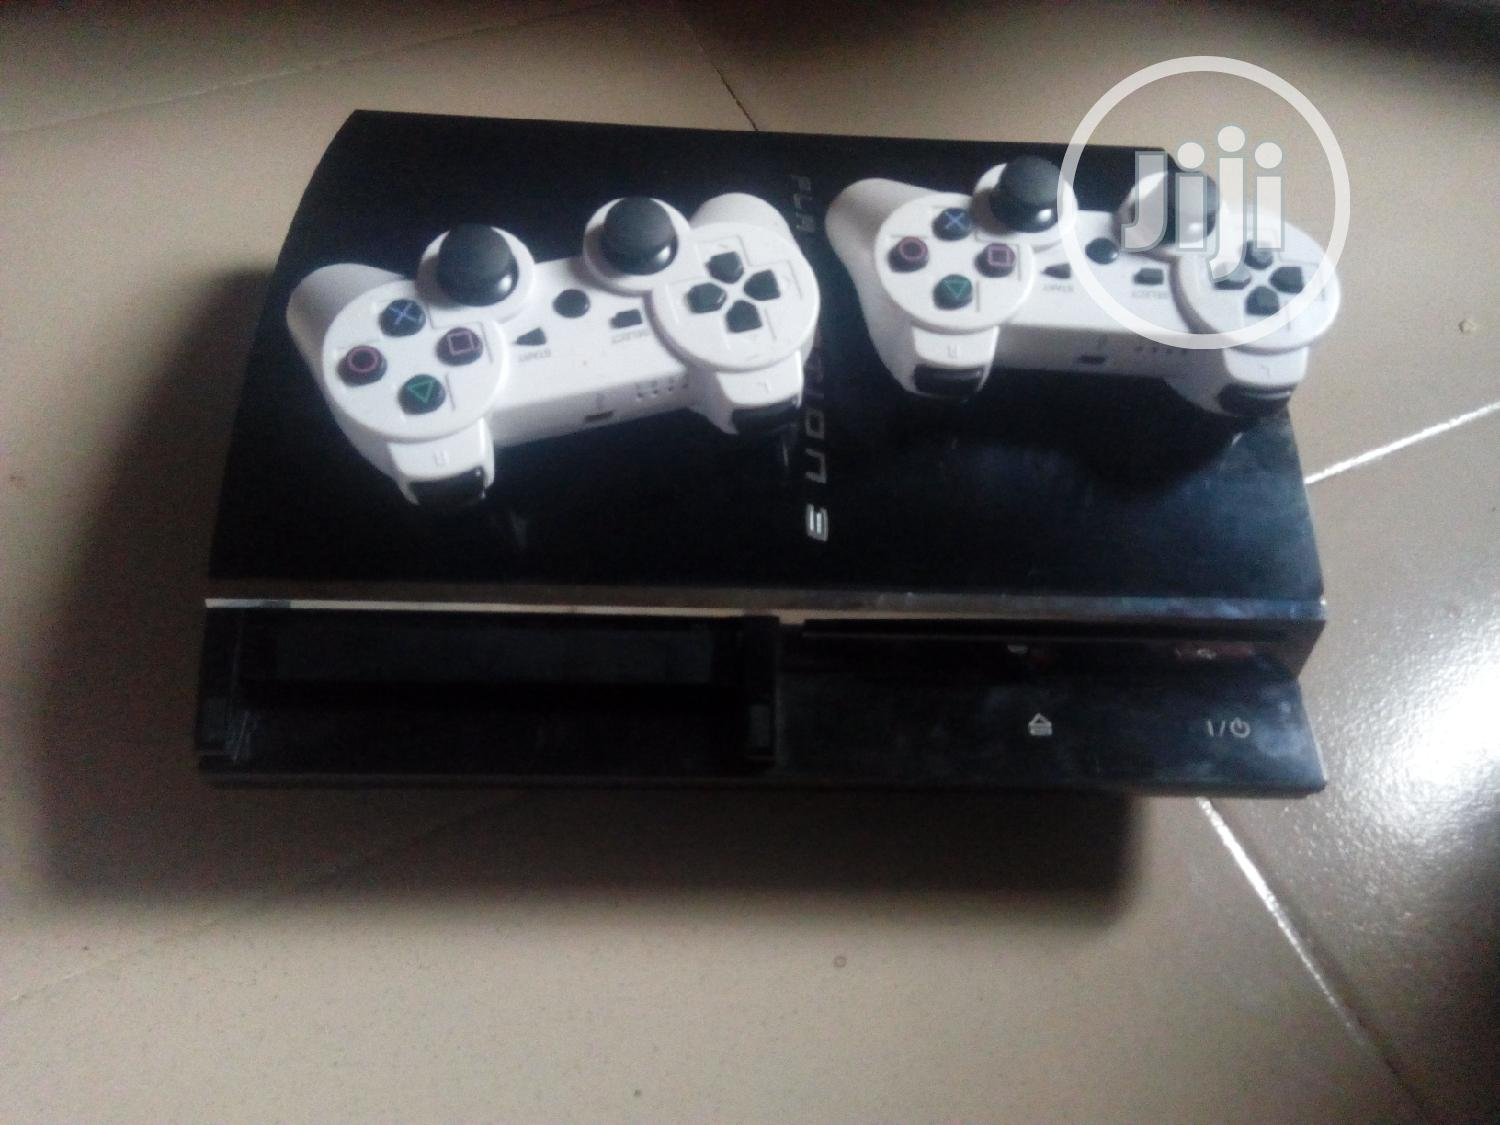 Uk Used Playstation3 With Downloaded Games In Ajah Video Game Consoles Obd West International Jiji Ng For Sale In Ajah Buy Video Game Consoles From Obd West International On Jiji Ng